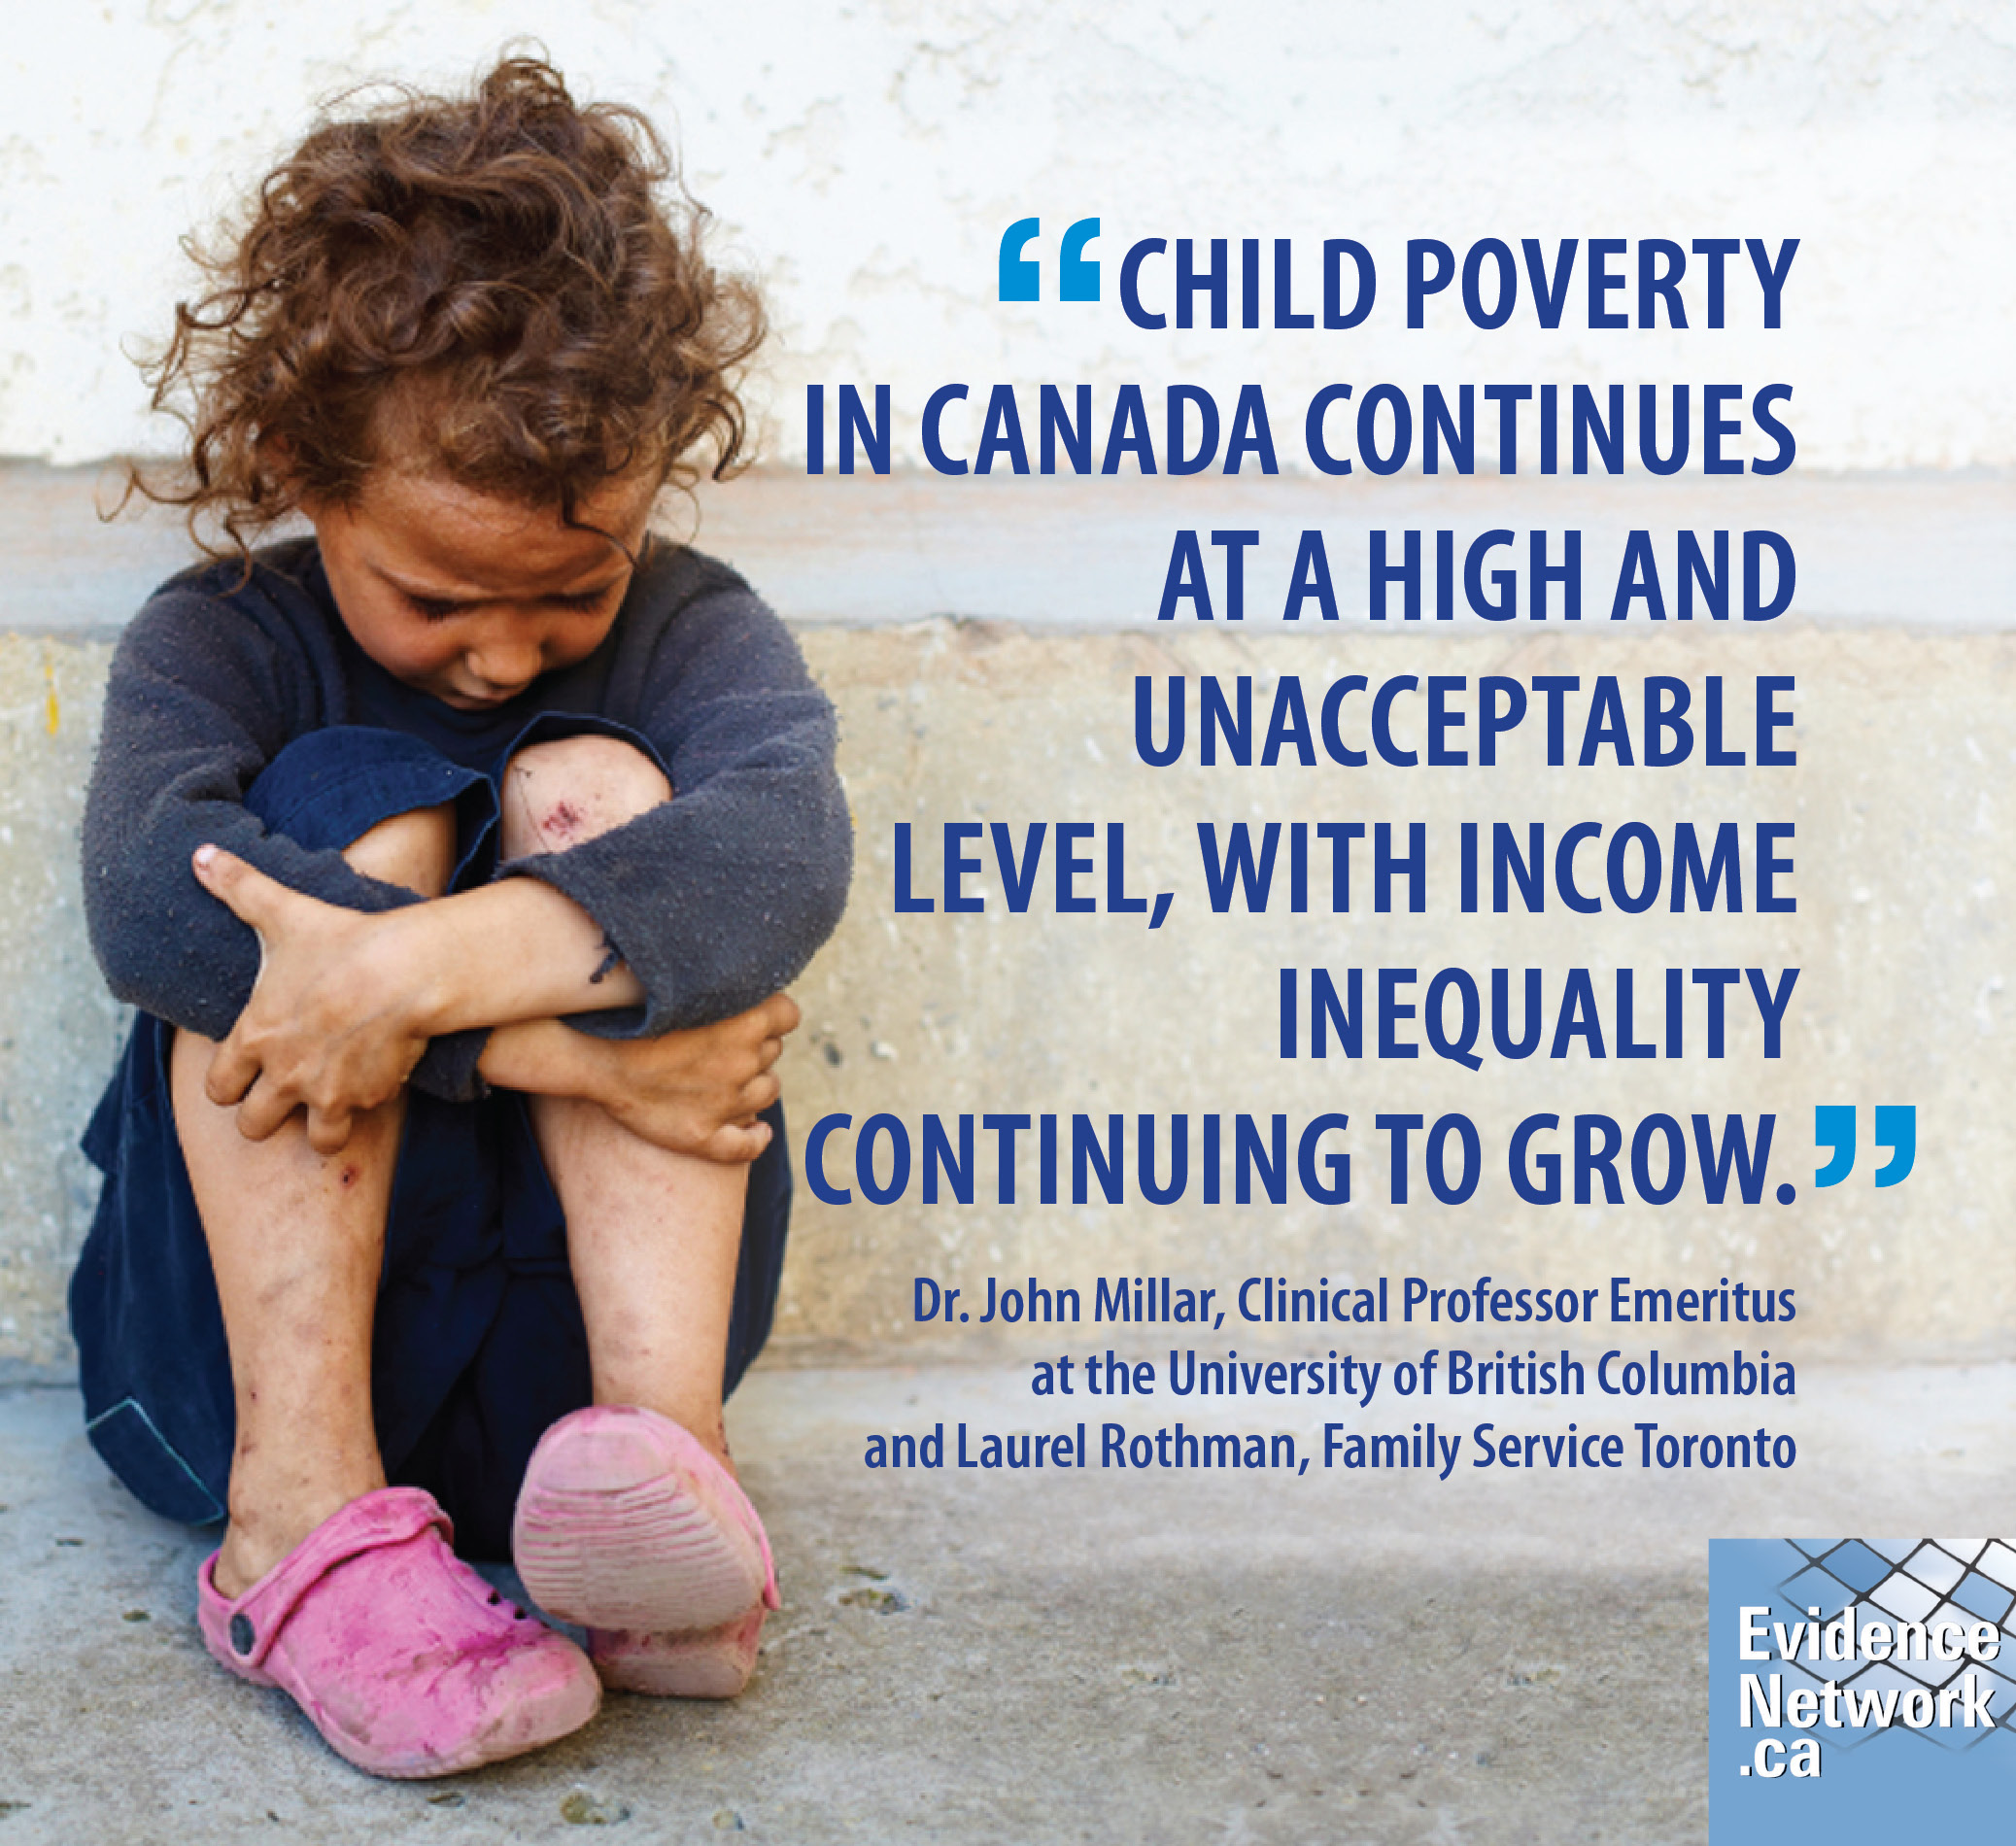 Child poverty in Canada continues at a high and unacceptable level, with income inequality continuing to grow.